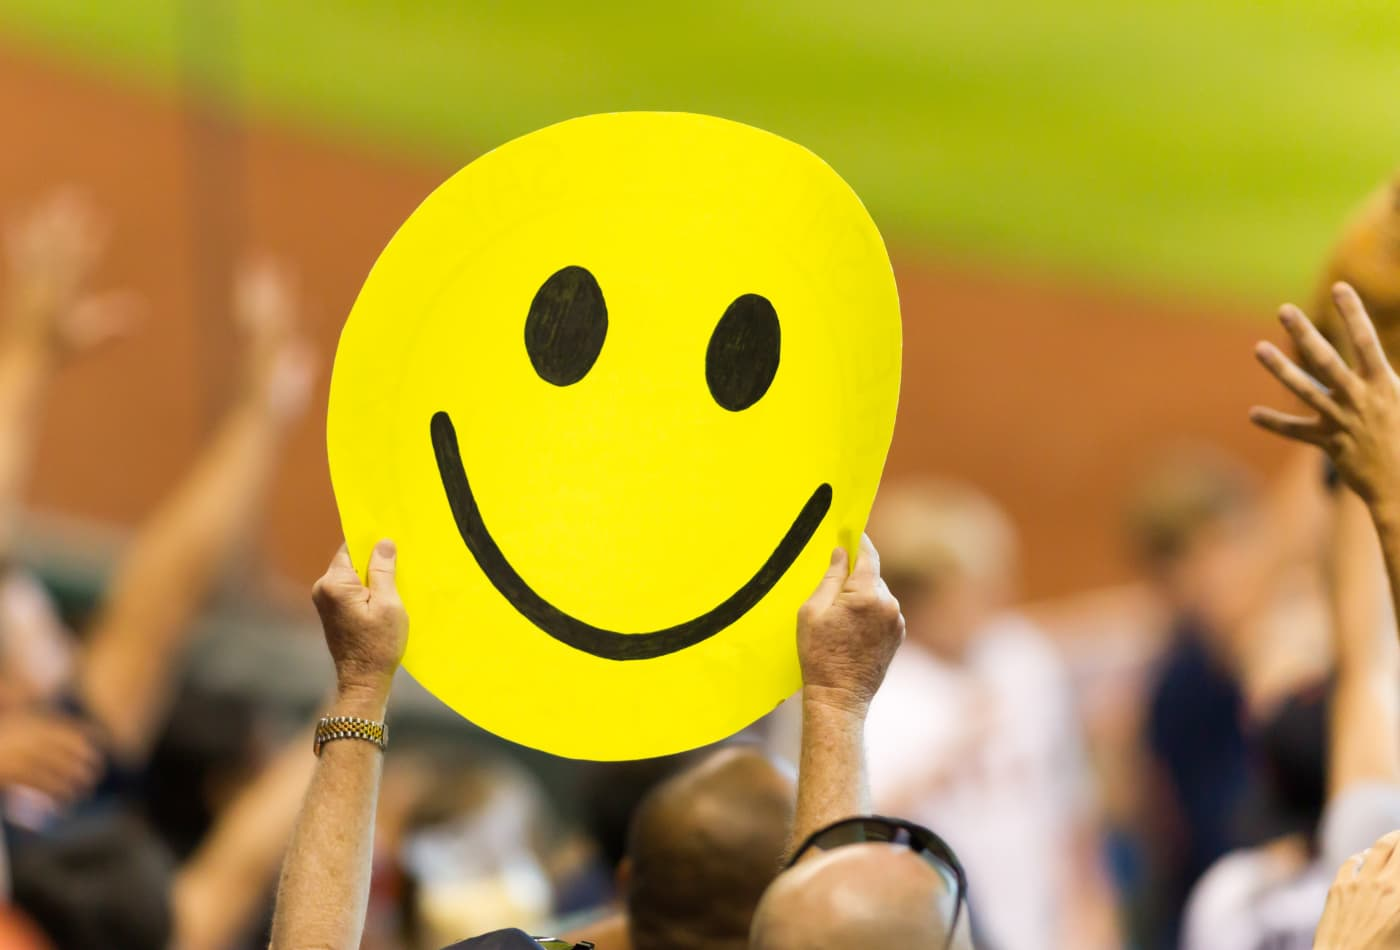 The man behind the smiley face symbol was paid $45 for his design